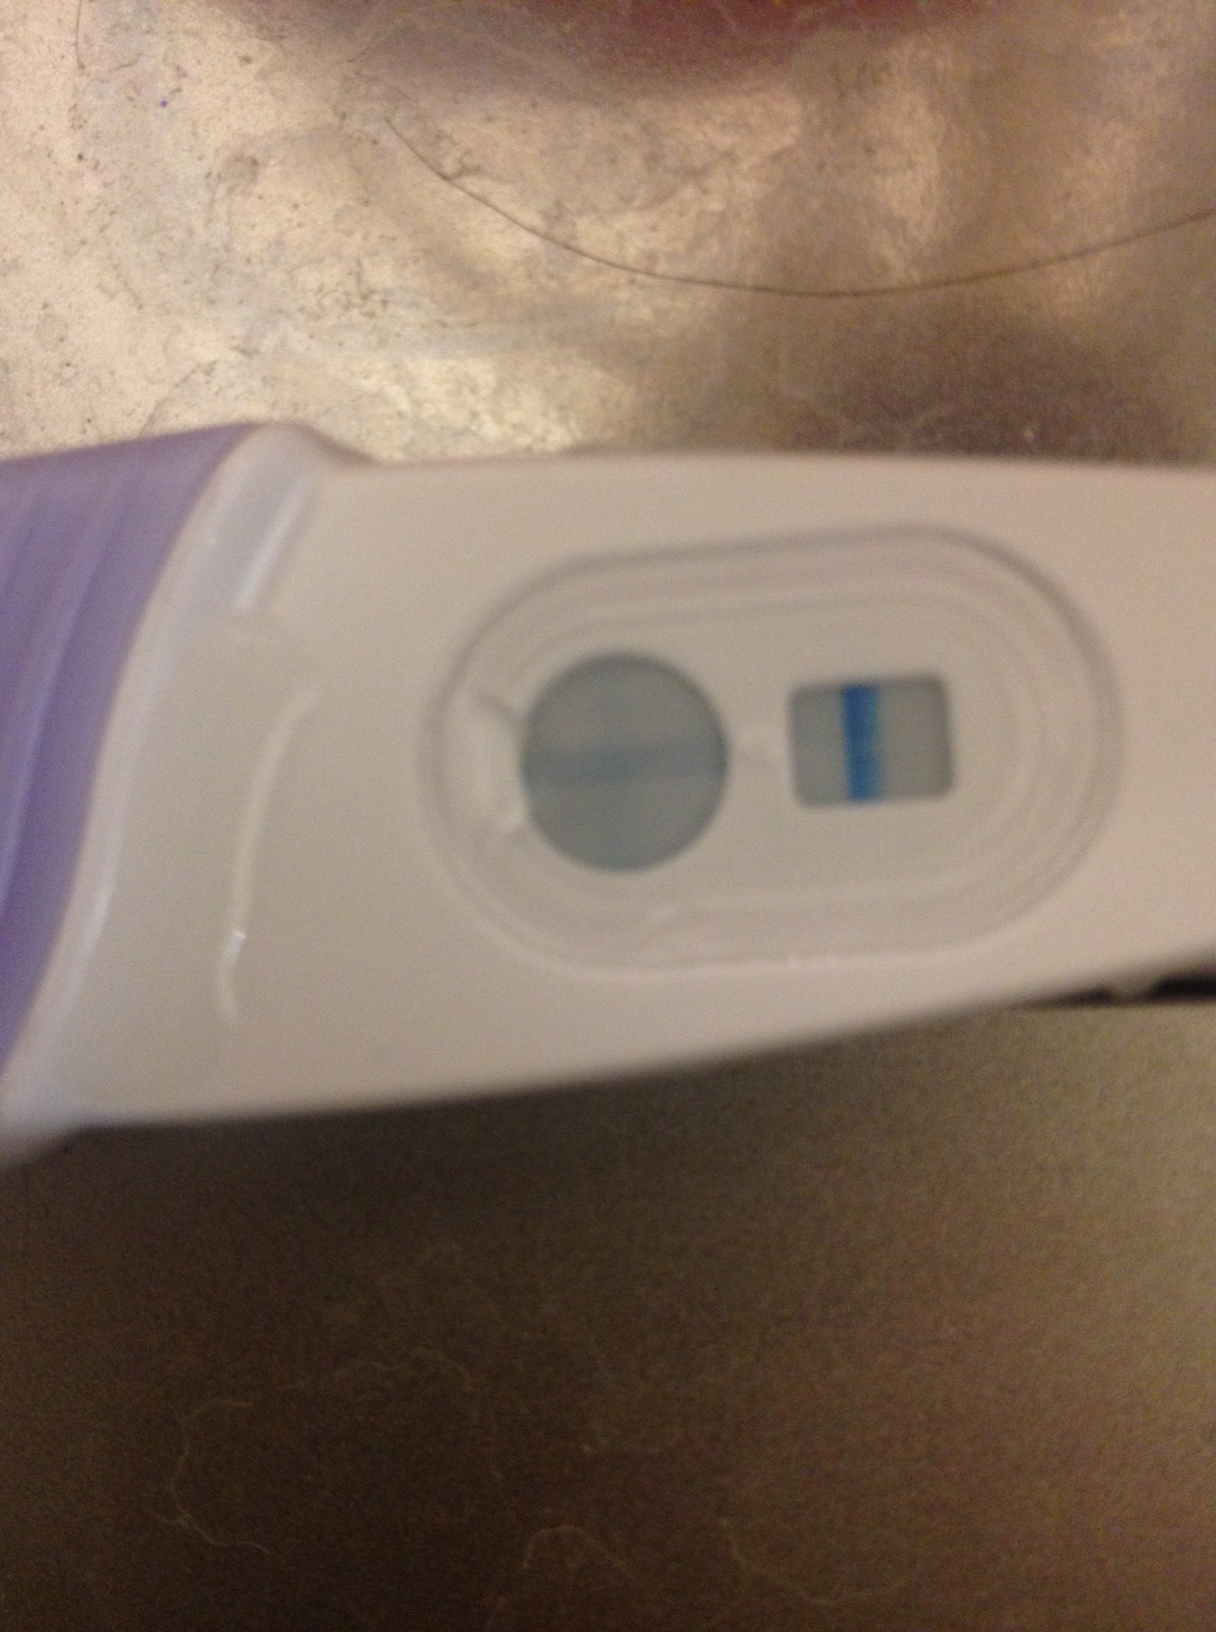 clear blue ovulation test instruction manual